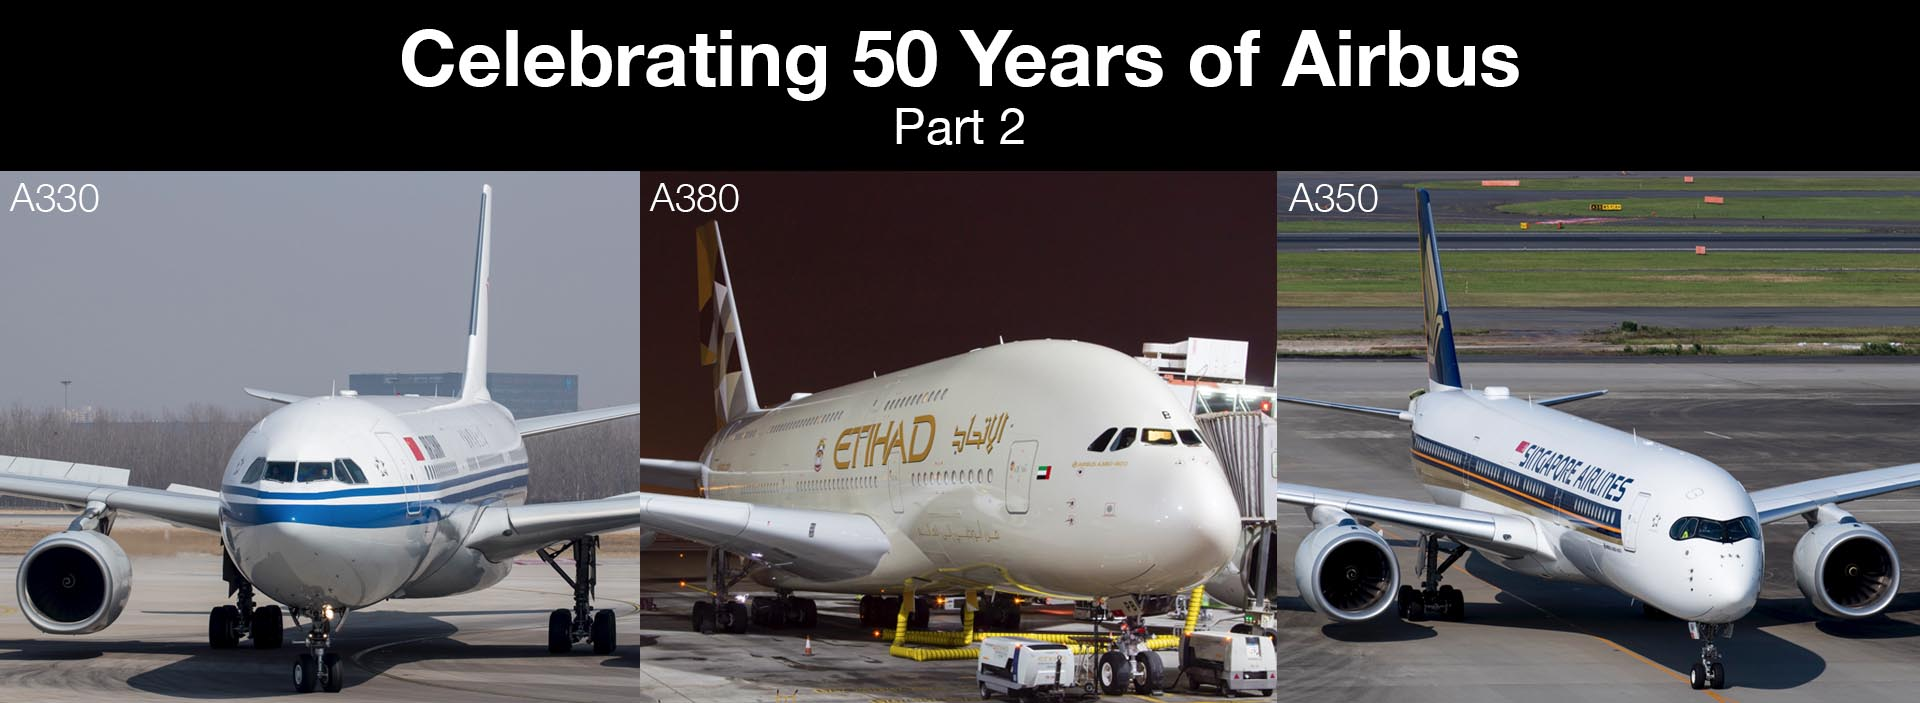 Celebrating 50 Years of Airbus Part 2: A330, A380, A350 & A220